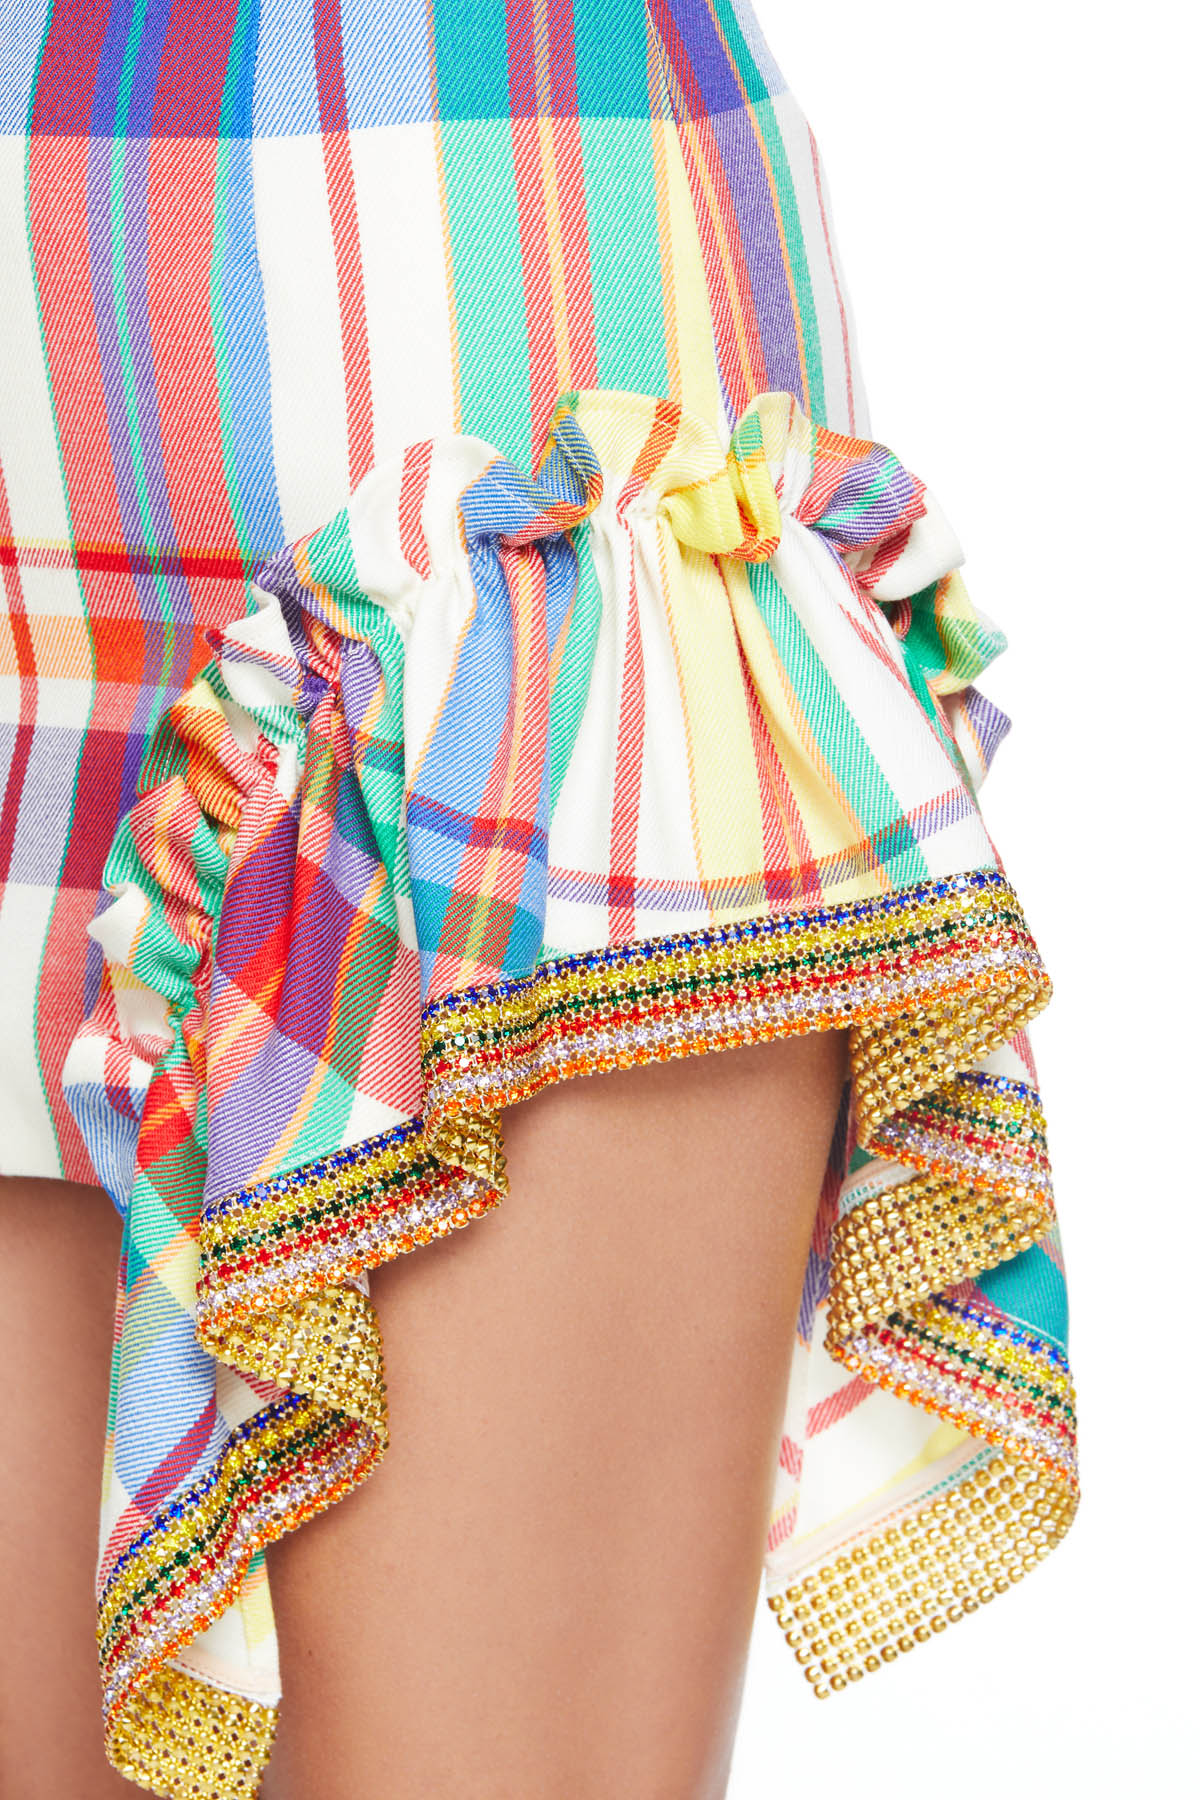 Ruffle mini skirt with crystal stripe detailing. Available in Rainbow.